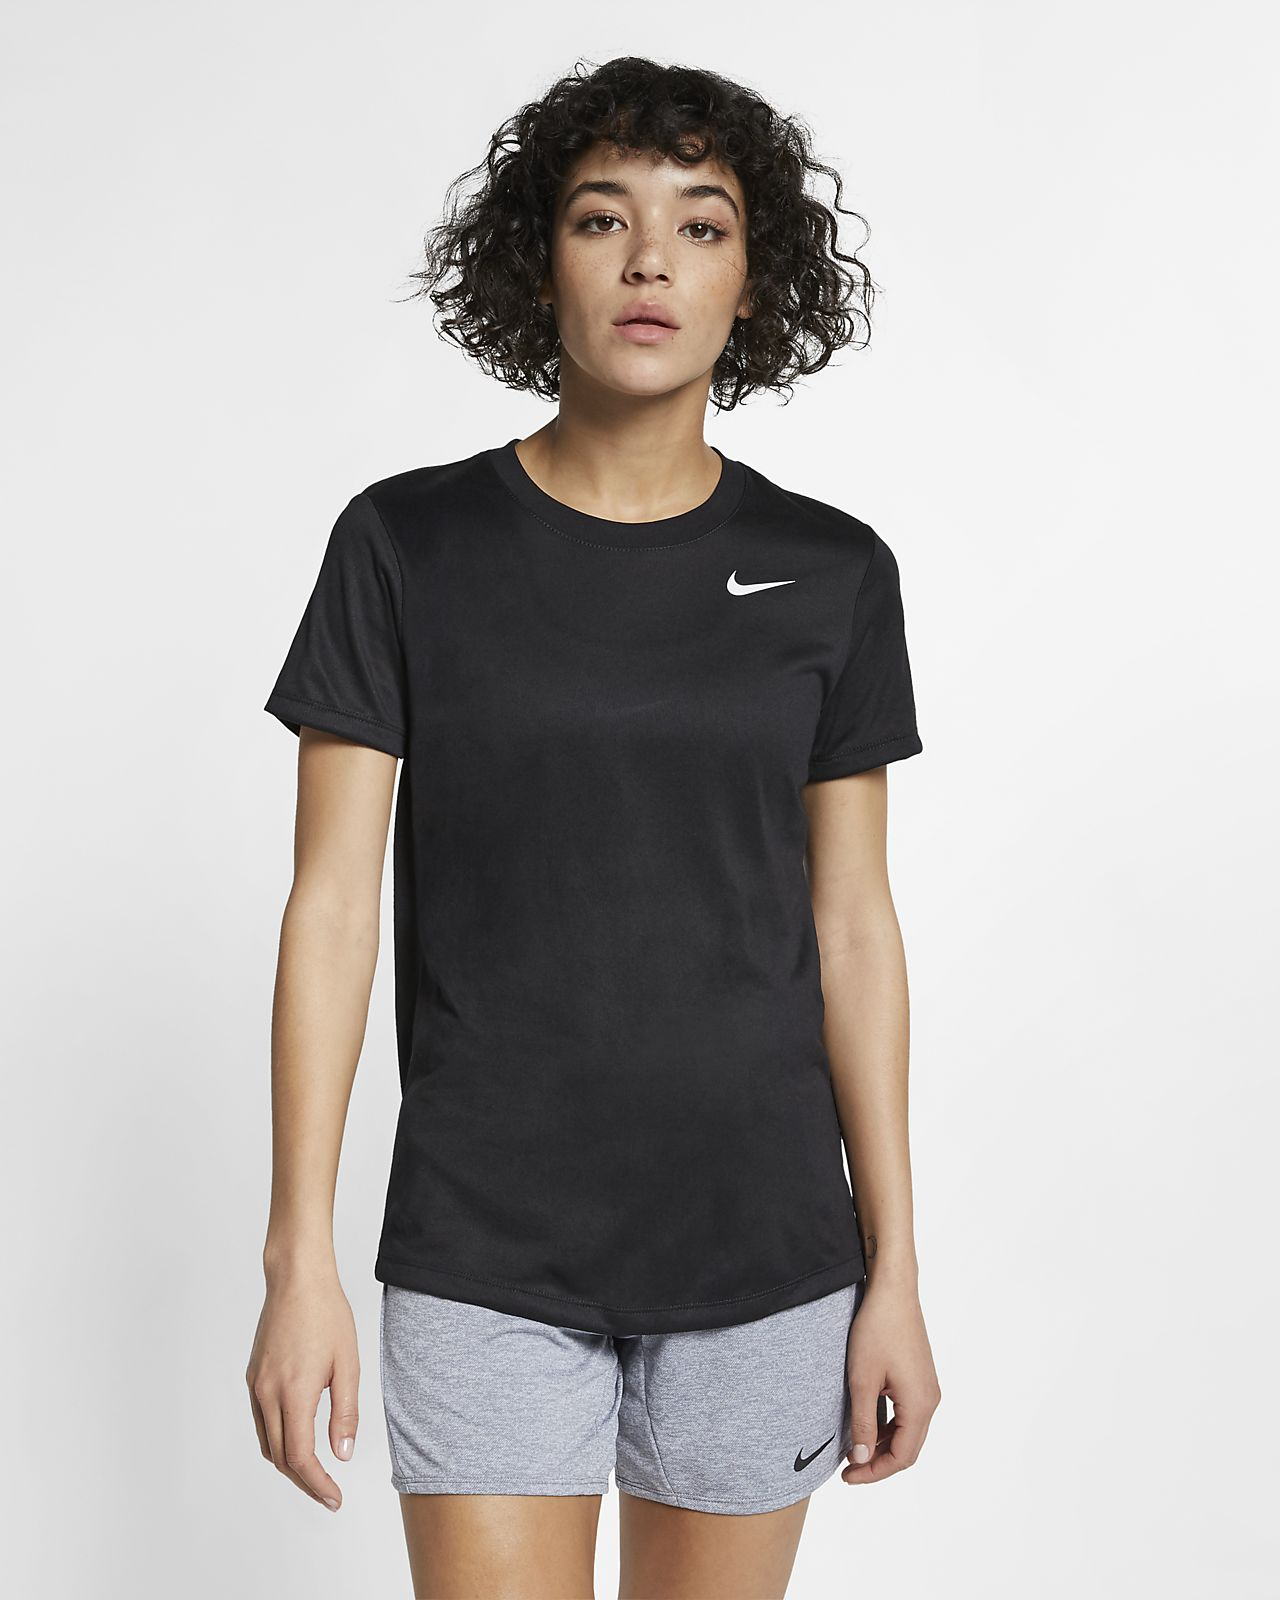 Nike Dri-FIT Legend Women's Training T-Shirt